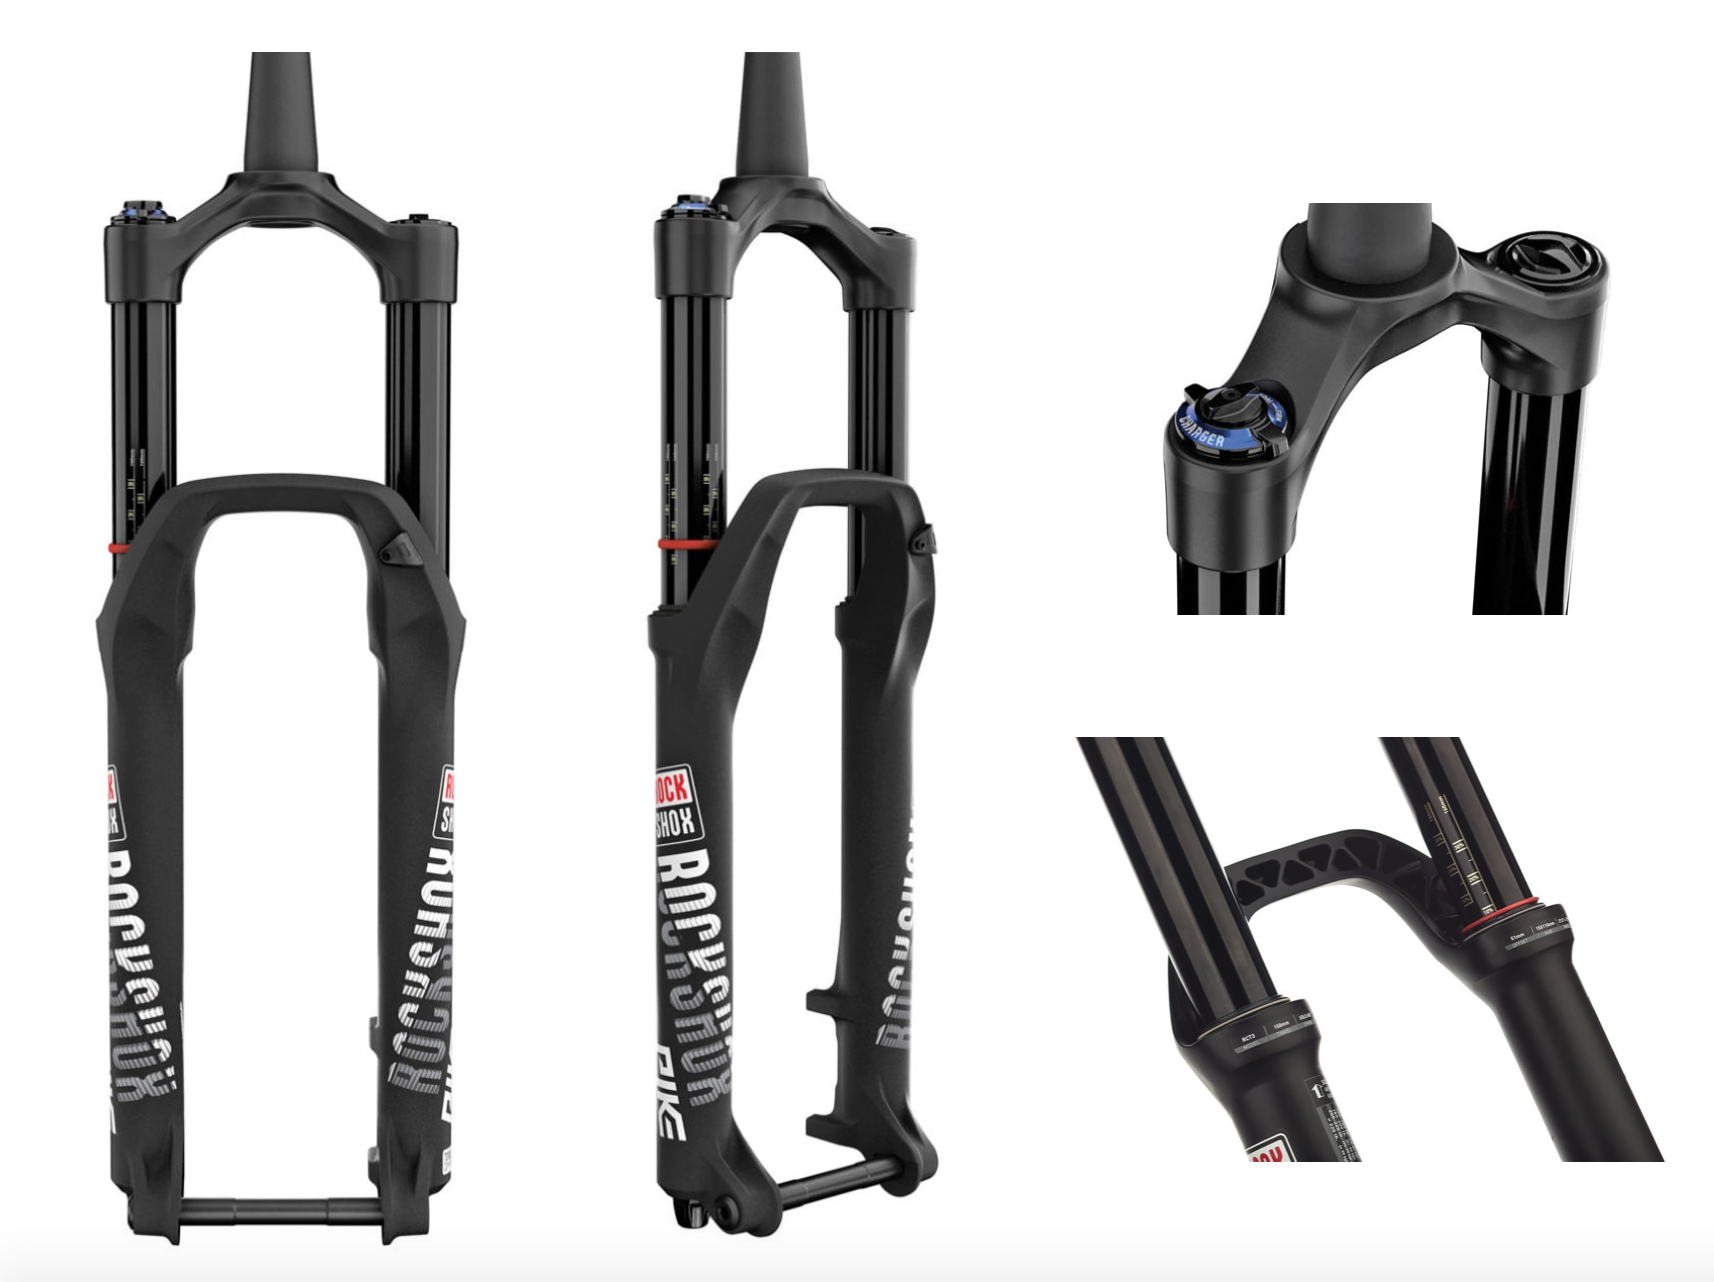 Ultimate Review Guide: Rockshox Pike Fork | Worldwide Cyclery